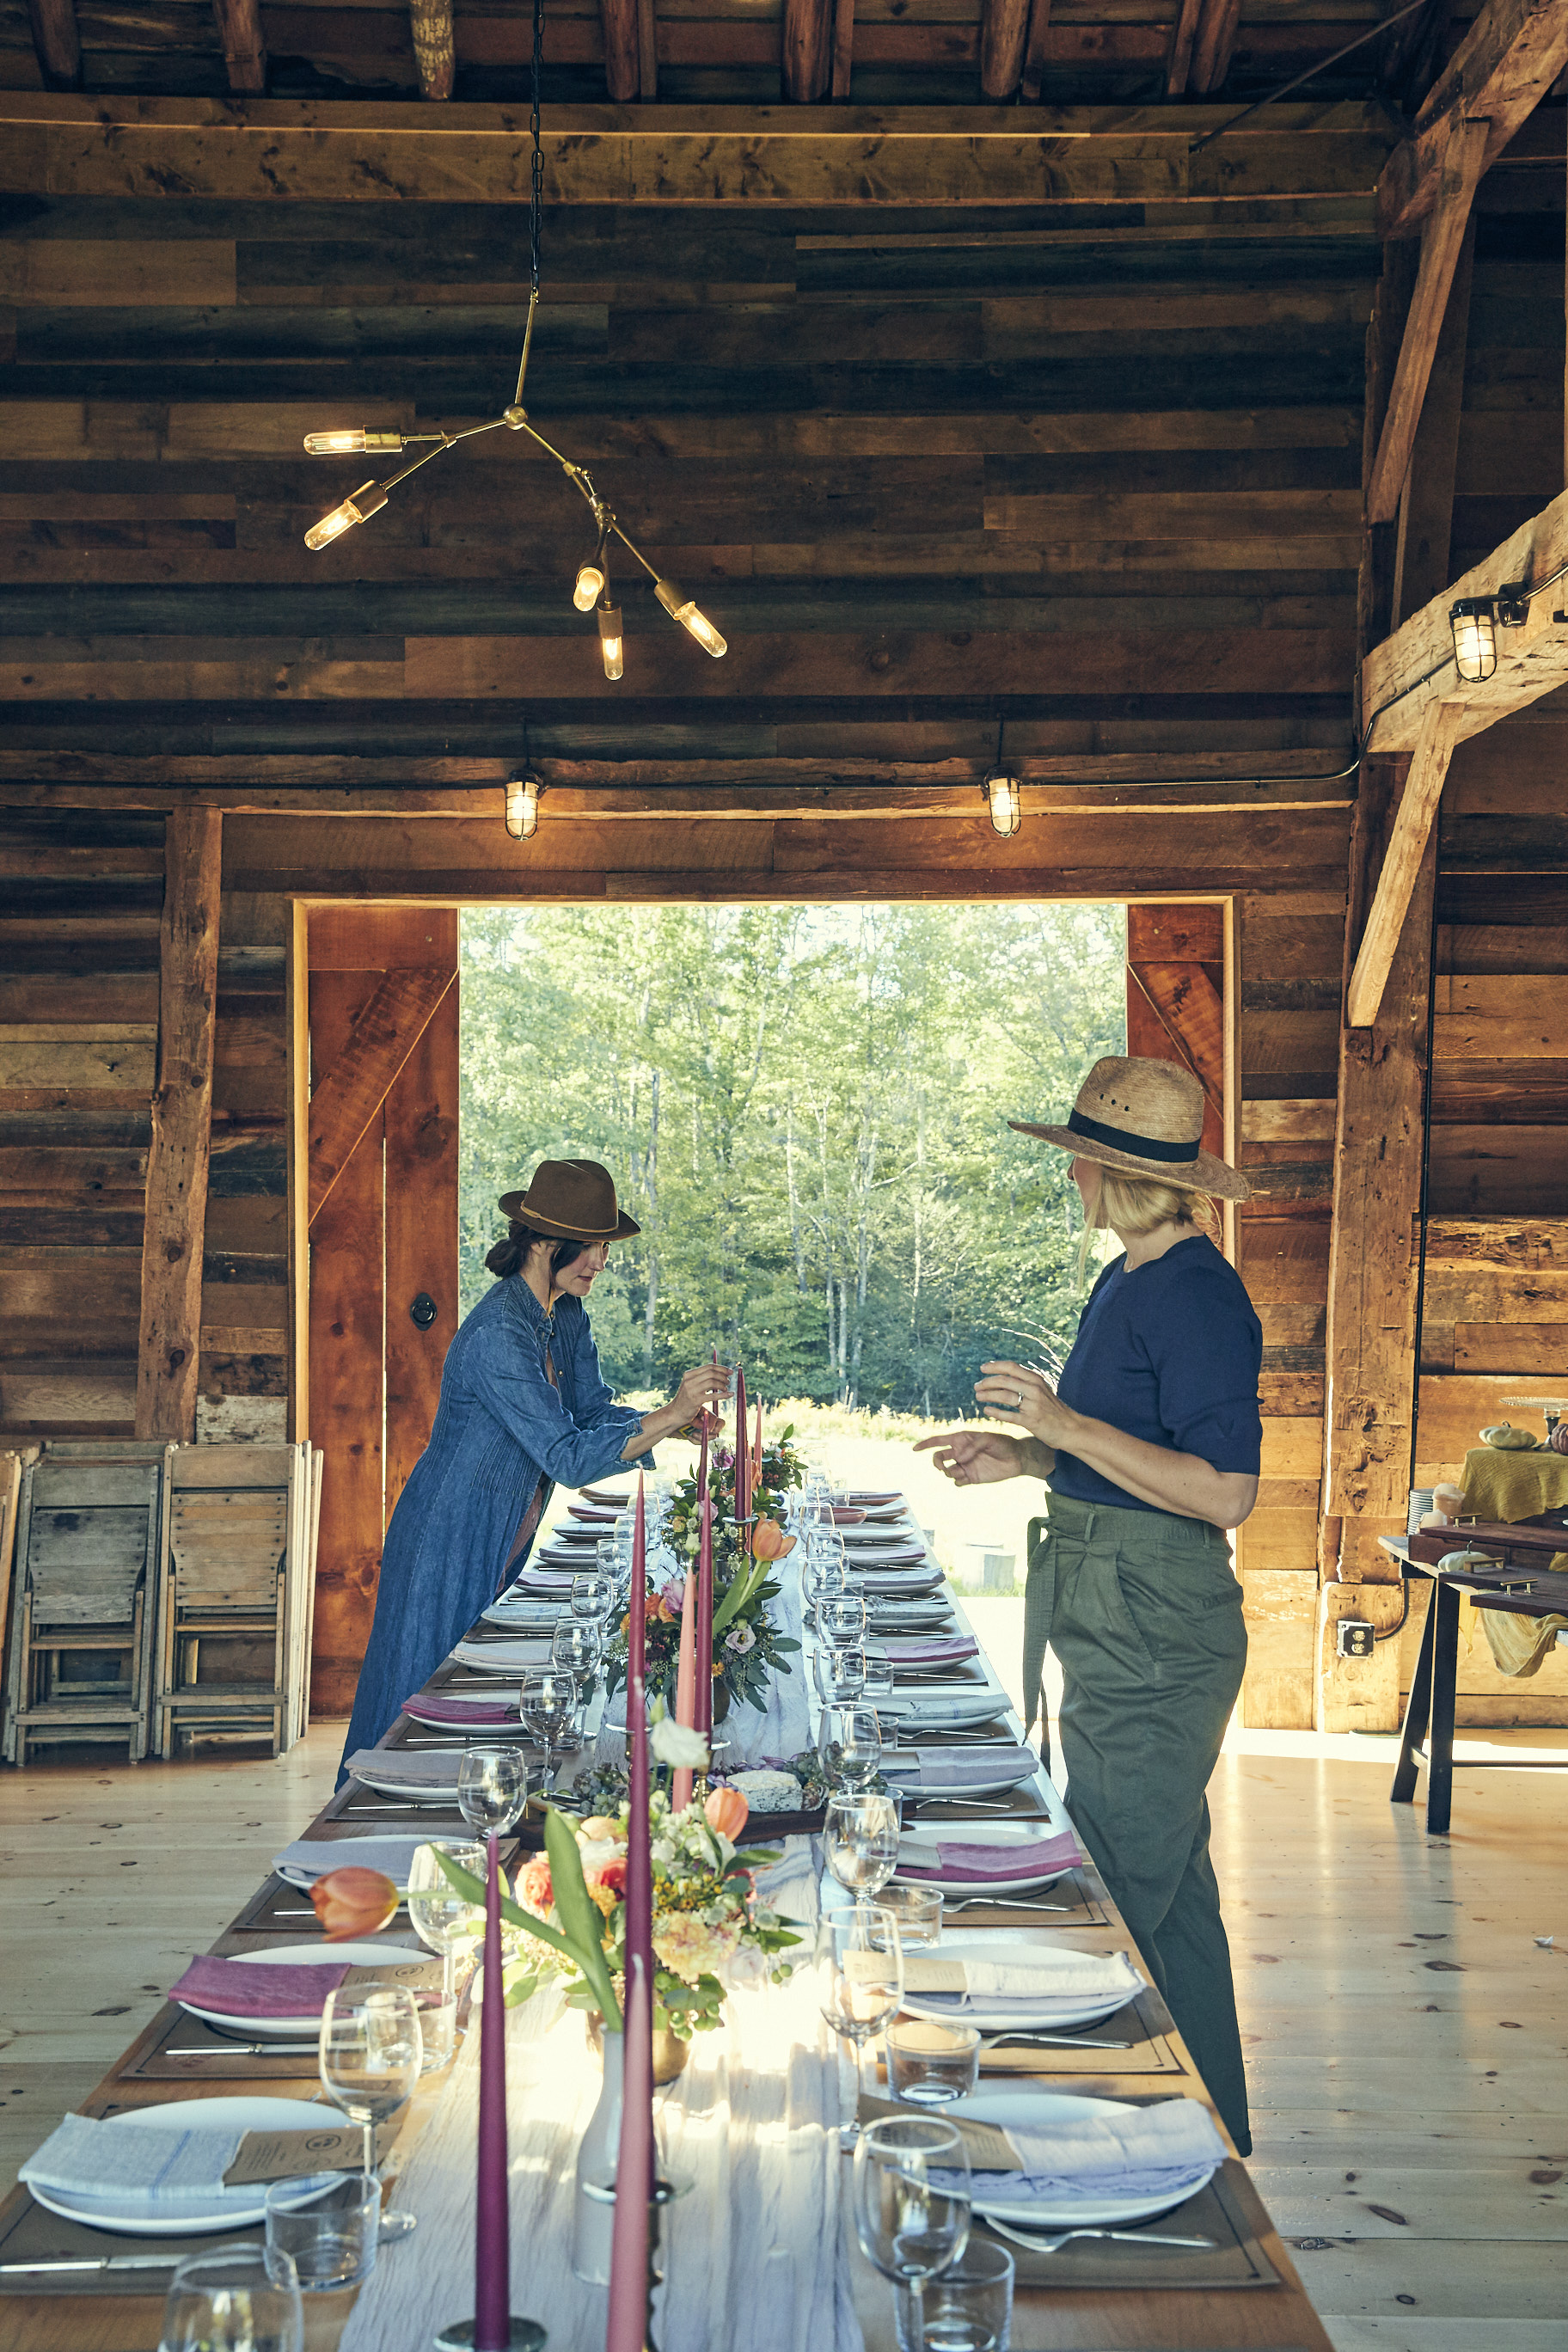 AUTHOR SARAH COPELAND X DESIGNER DANA McCLURE  DREAMY FEED SUPPER IN THE HUDSON VALLEY